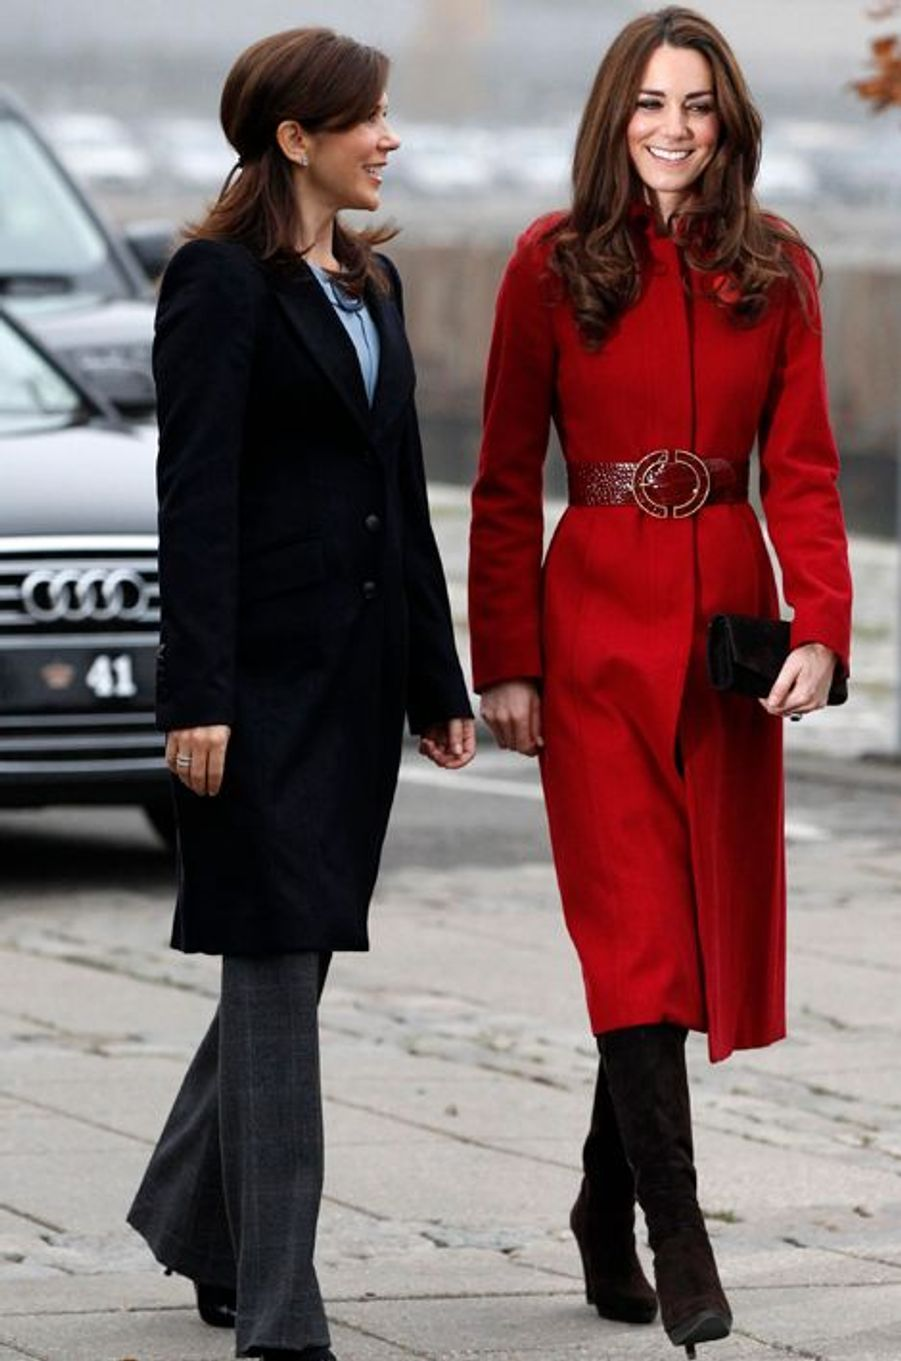 La duchesse de Cambridge Kate avec la princesse Mary de Danemark, le 2 novembre 2011